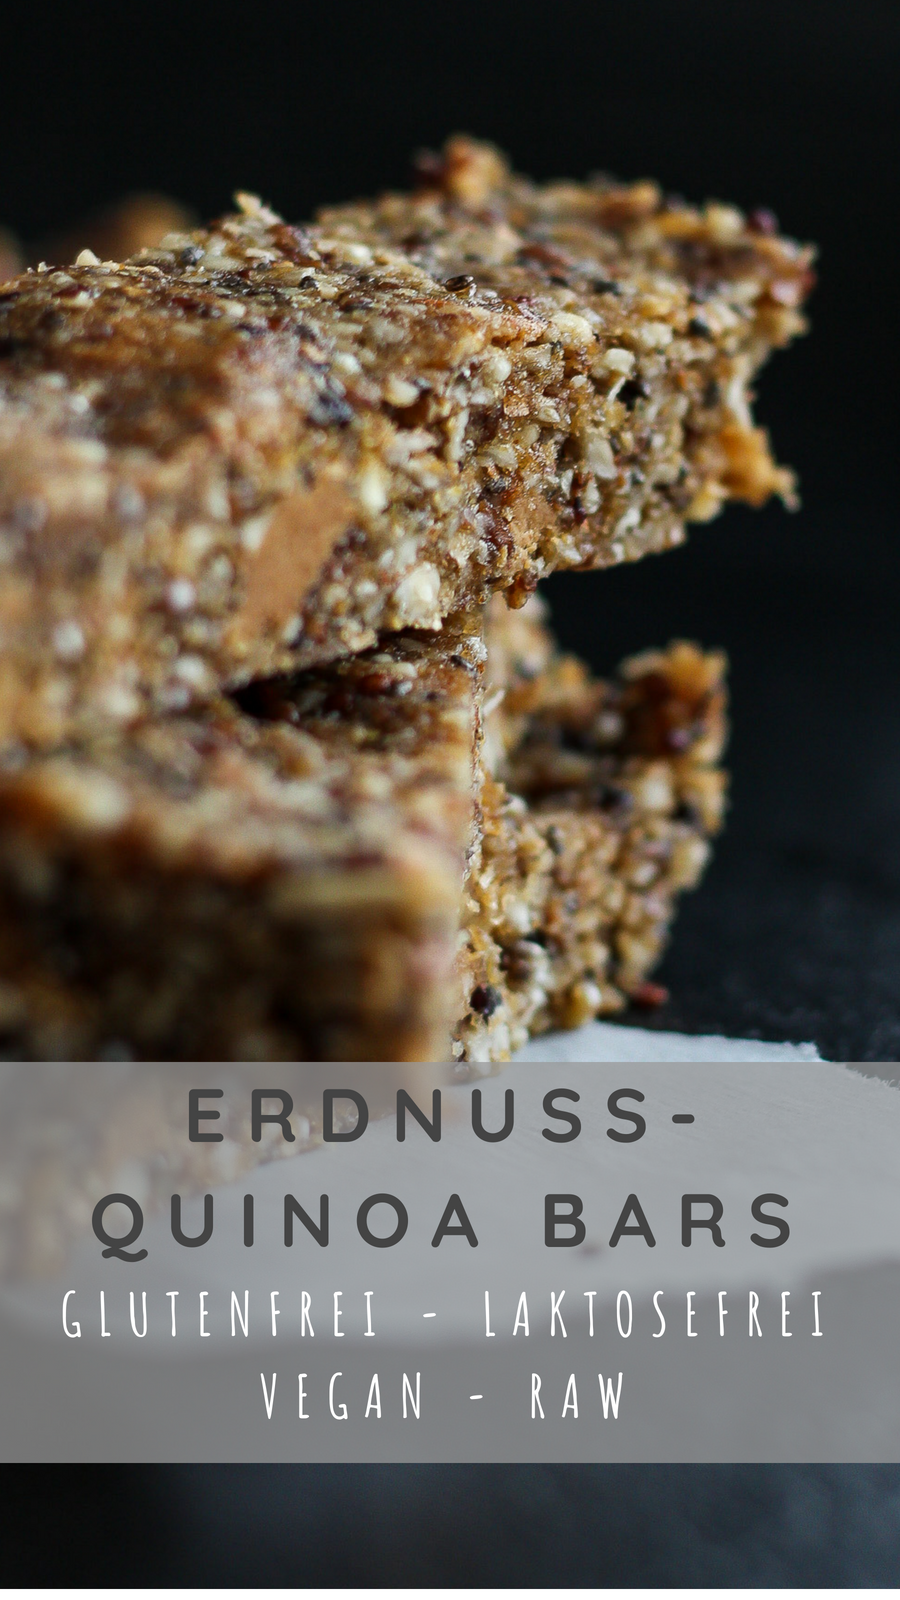 Erdnuss-Quinoa Bars